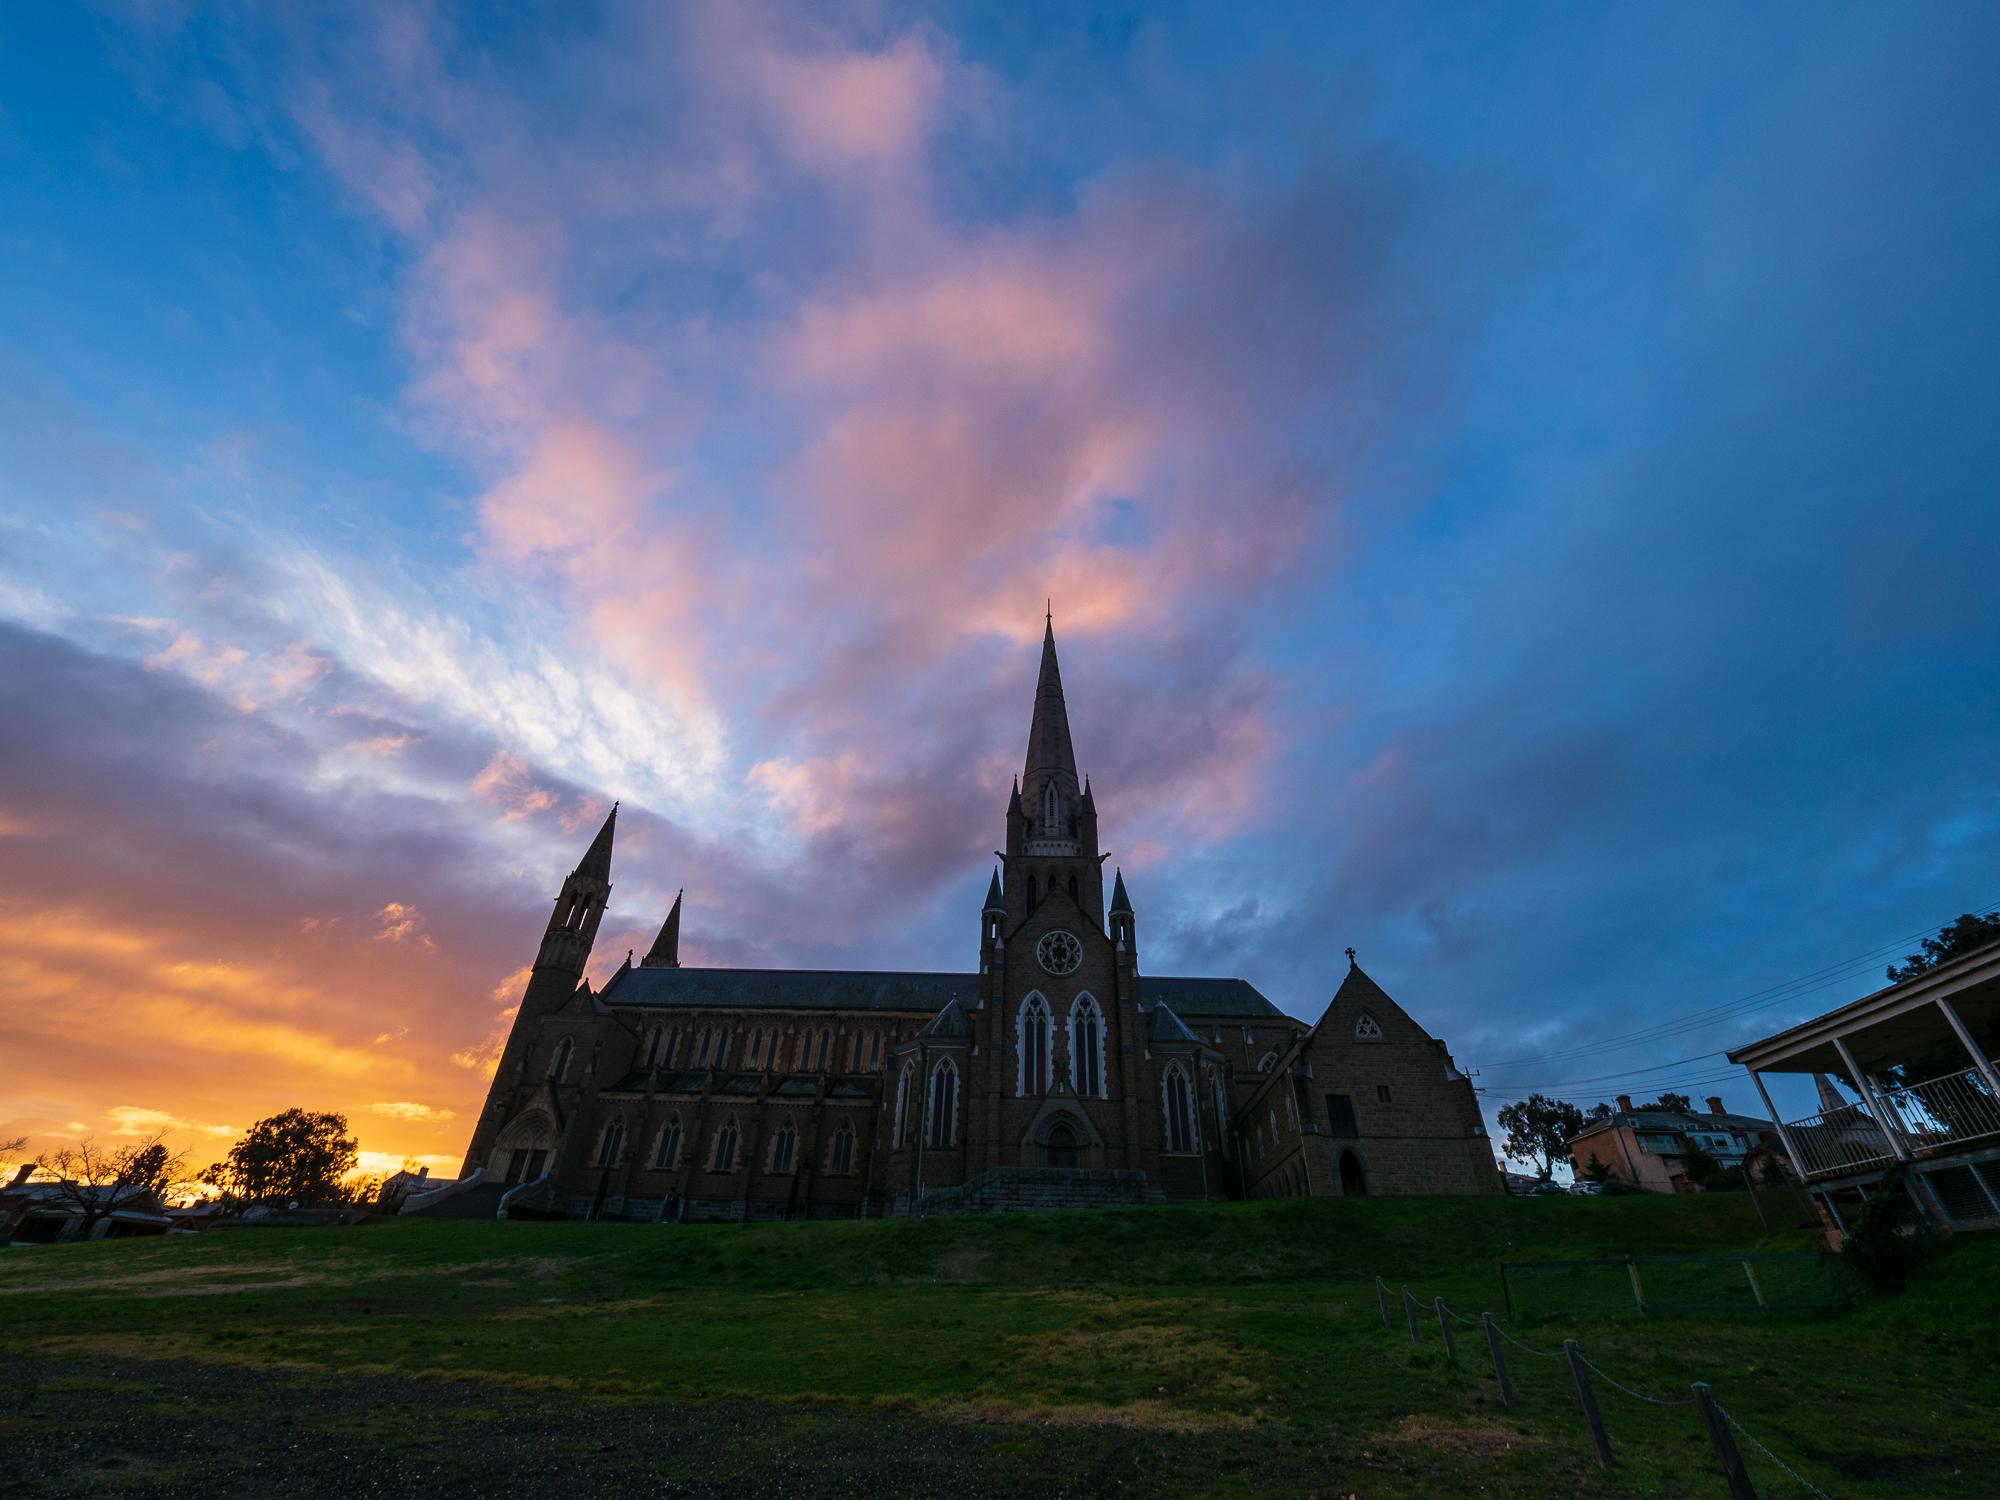 Shot a little earlier than the photo above, will have to shoot another time of year to get the sunet more behind the cathedral.